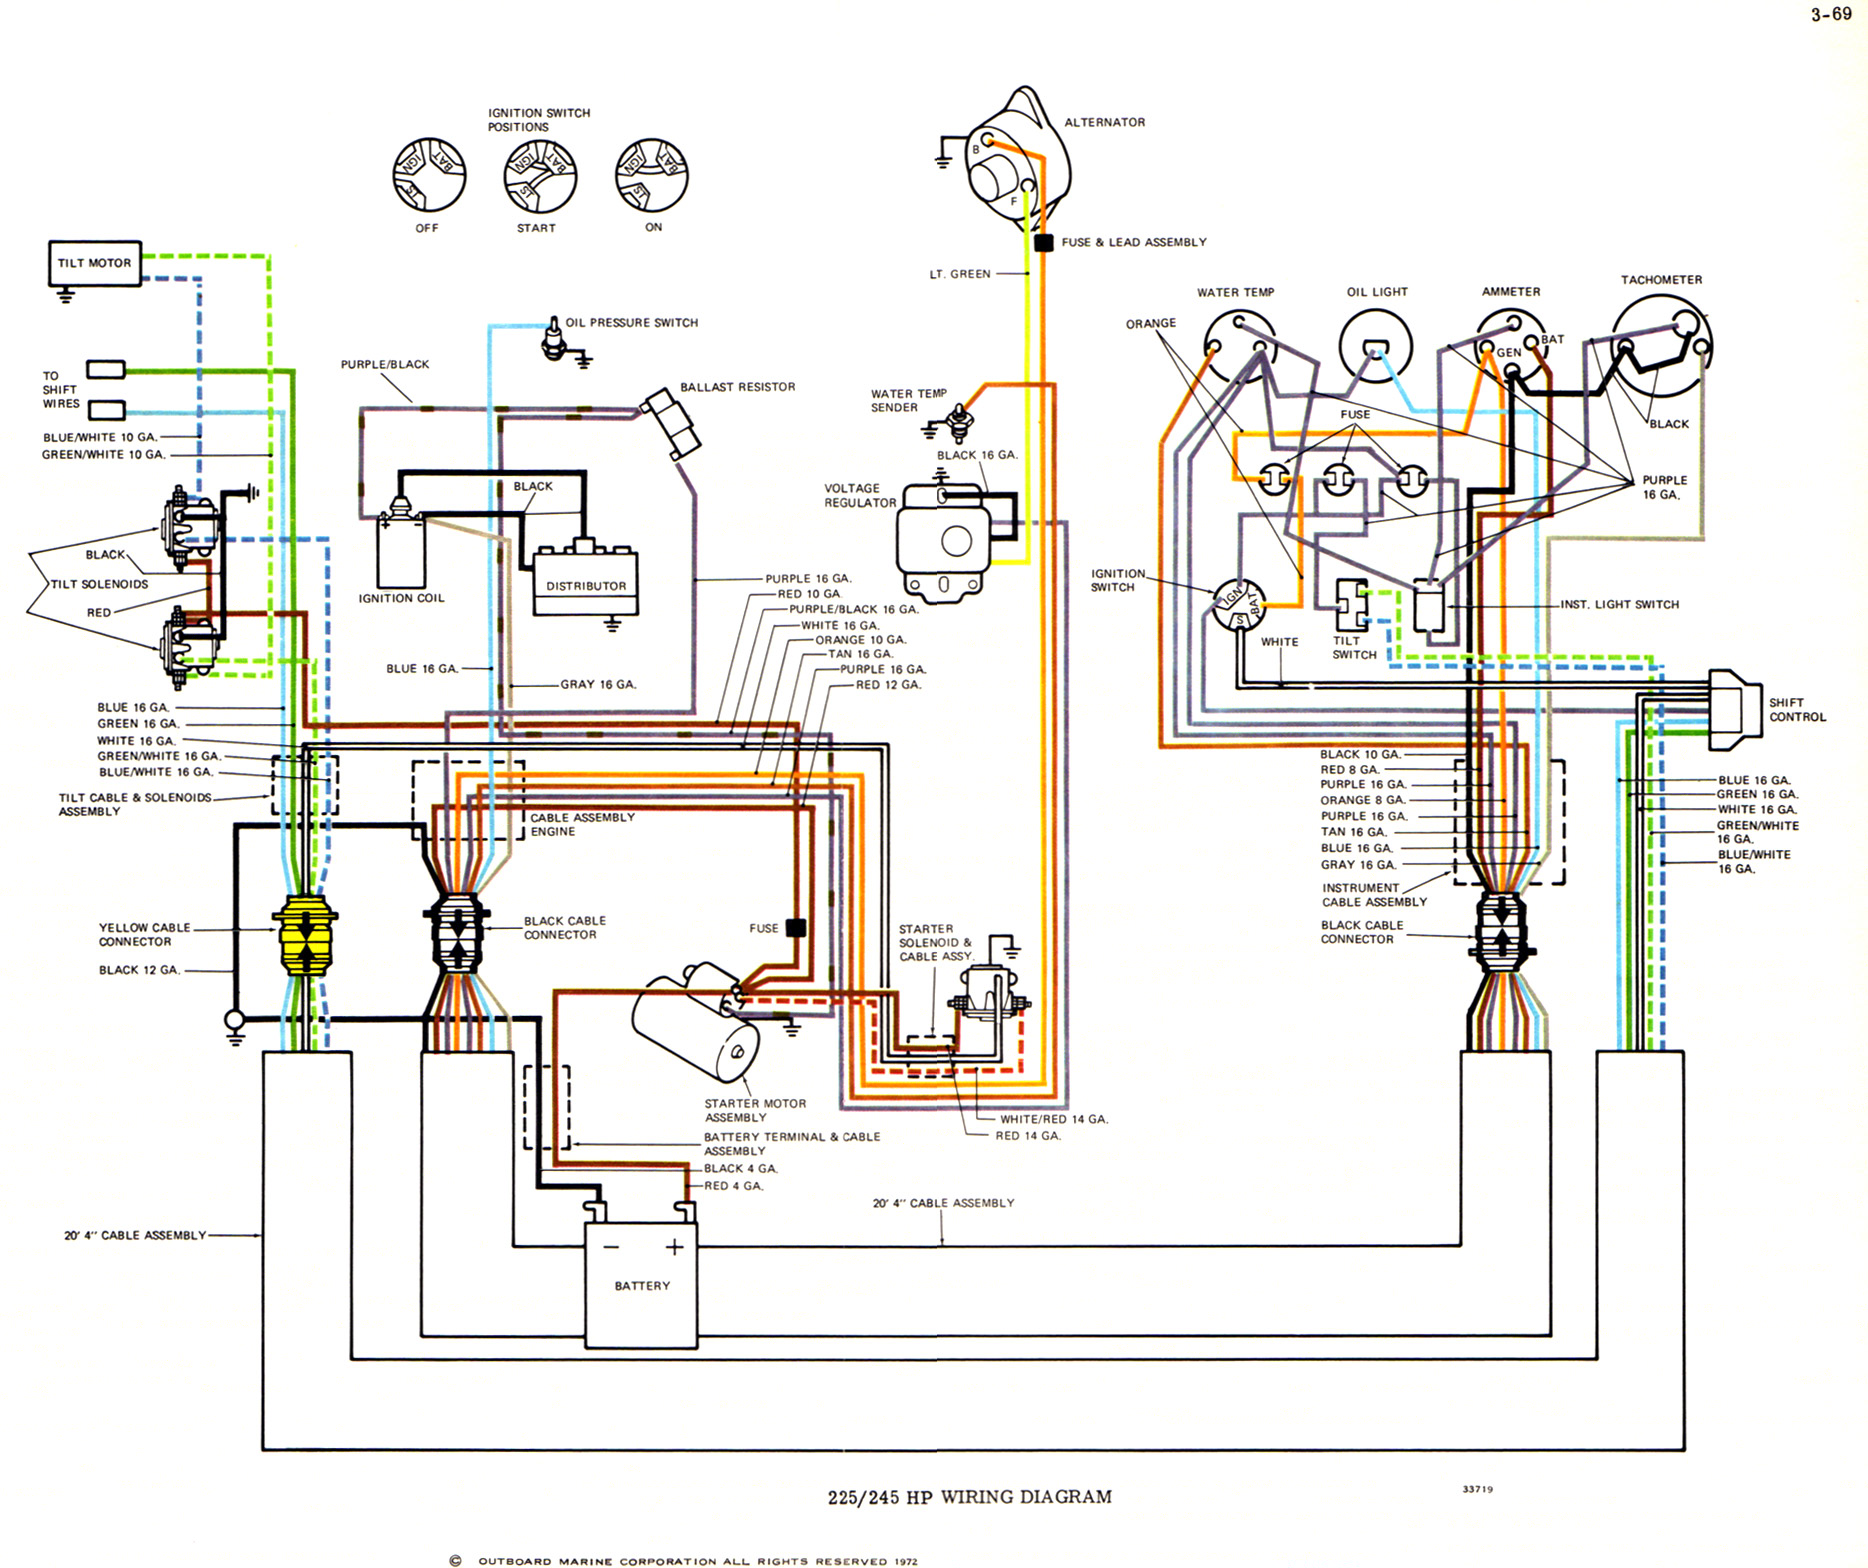 Omc Schematic Diagrams Starting Know About Wiring Diagram \u2022 OMC Cobra  Wiring-Diagram Omc Boat Wiring Diagrams Schematics